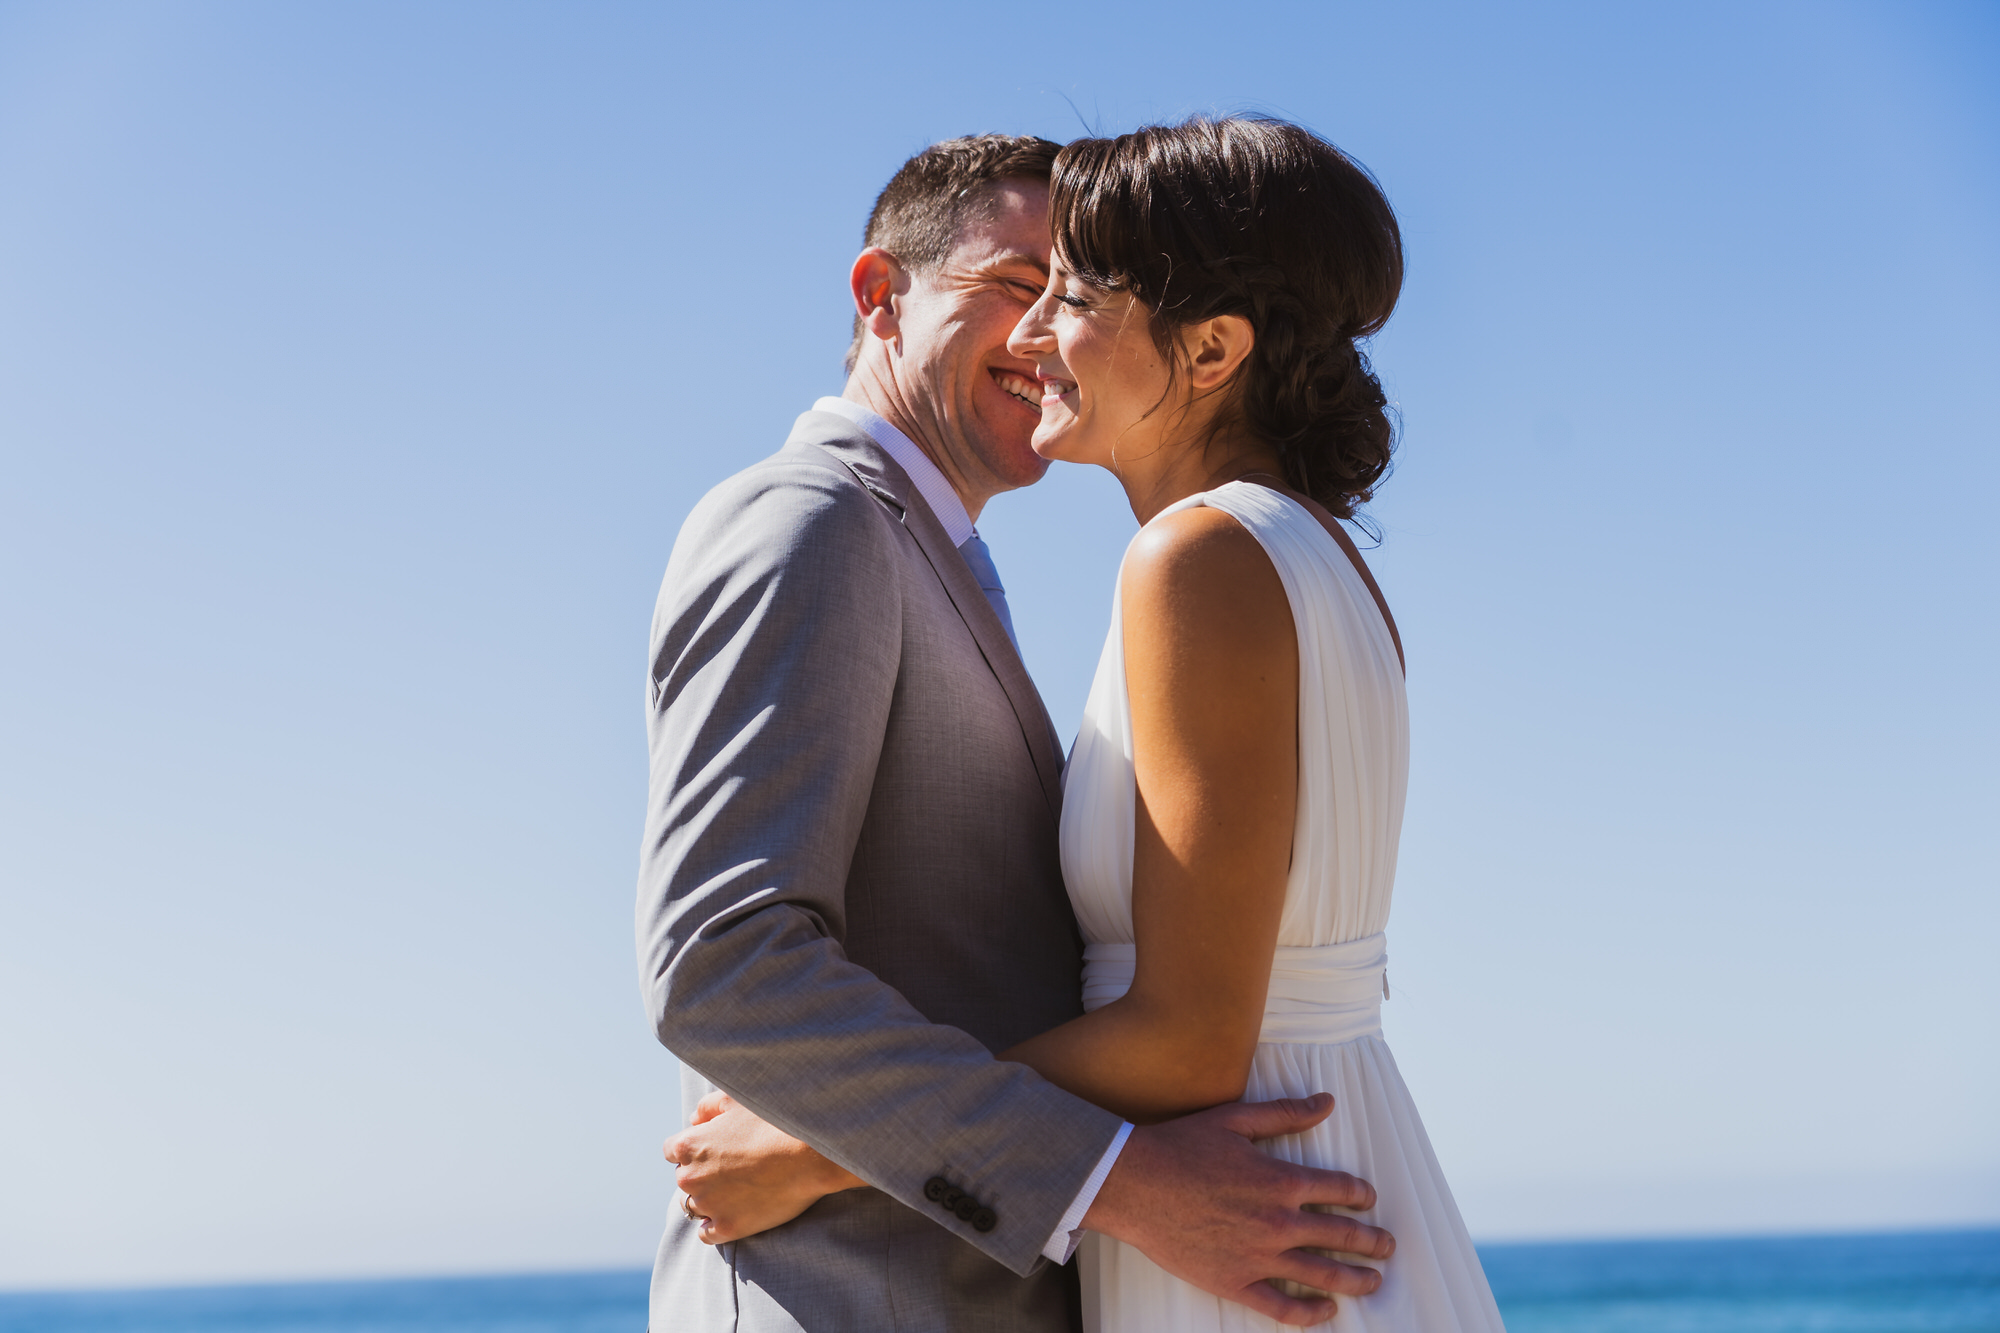 carlsbad_wedding_005